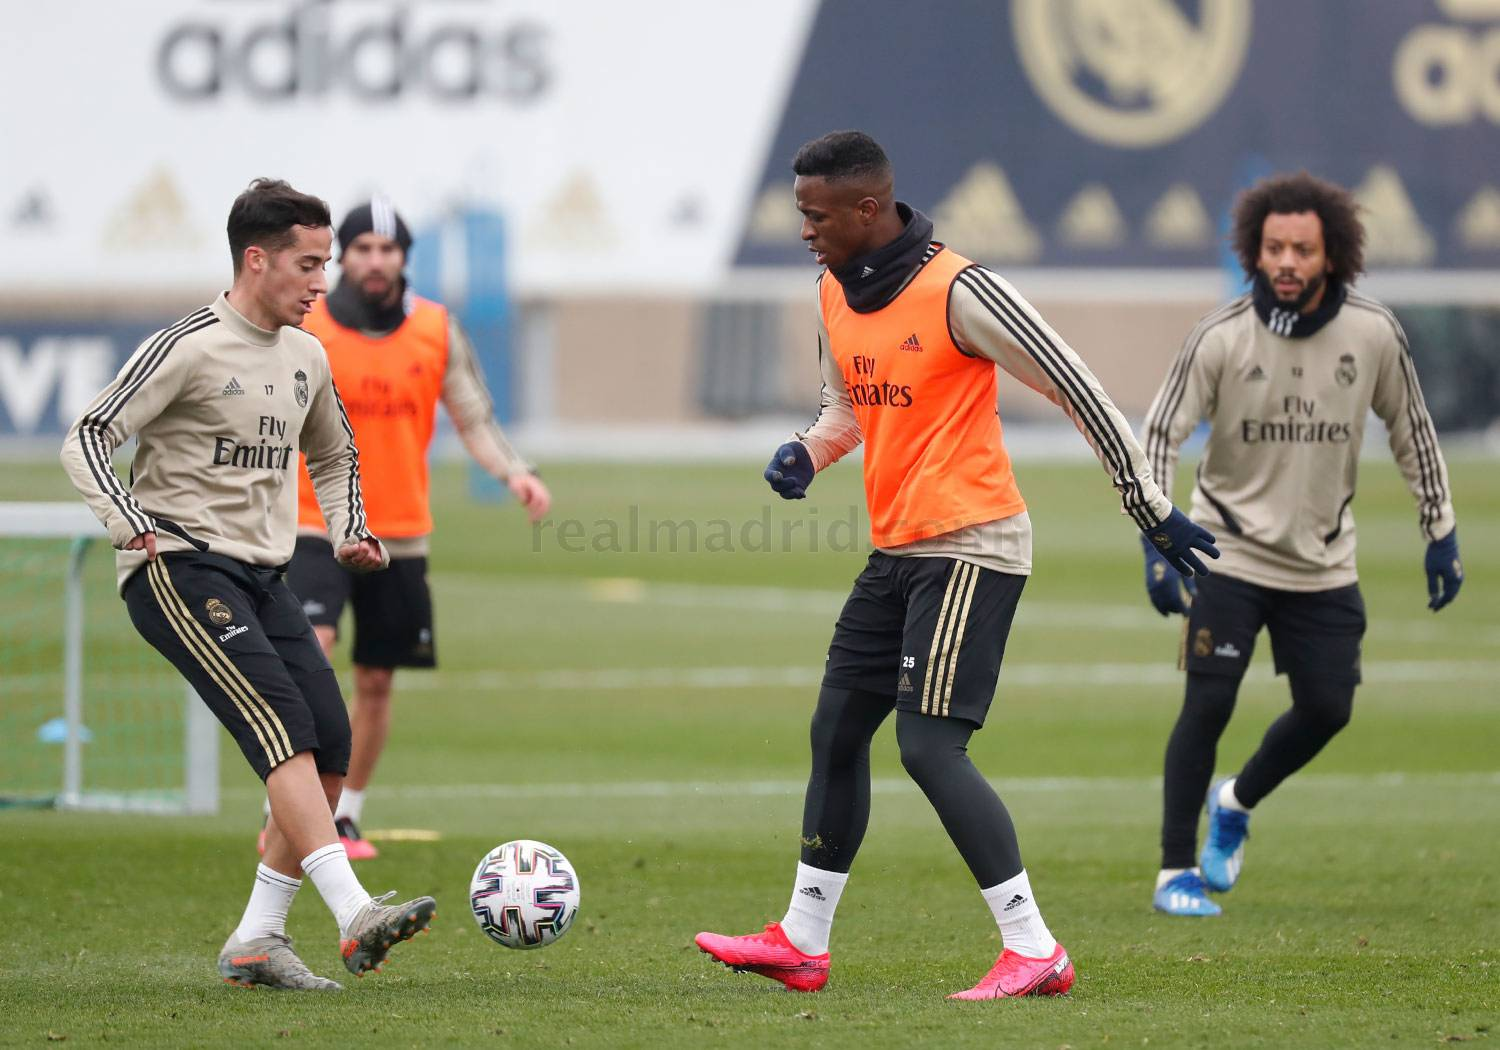 Real Madrid - Entrenamiento del Real Madrid  - 27-01-2020